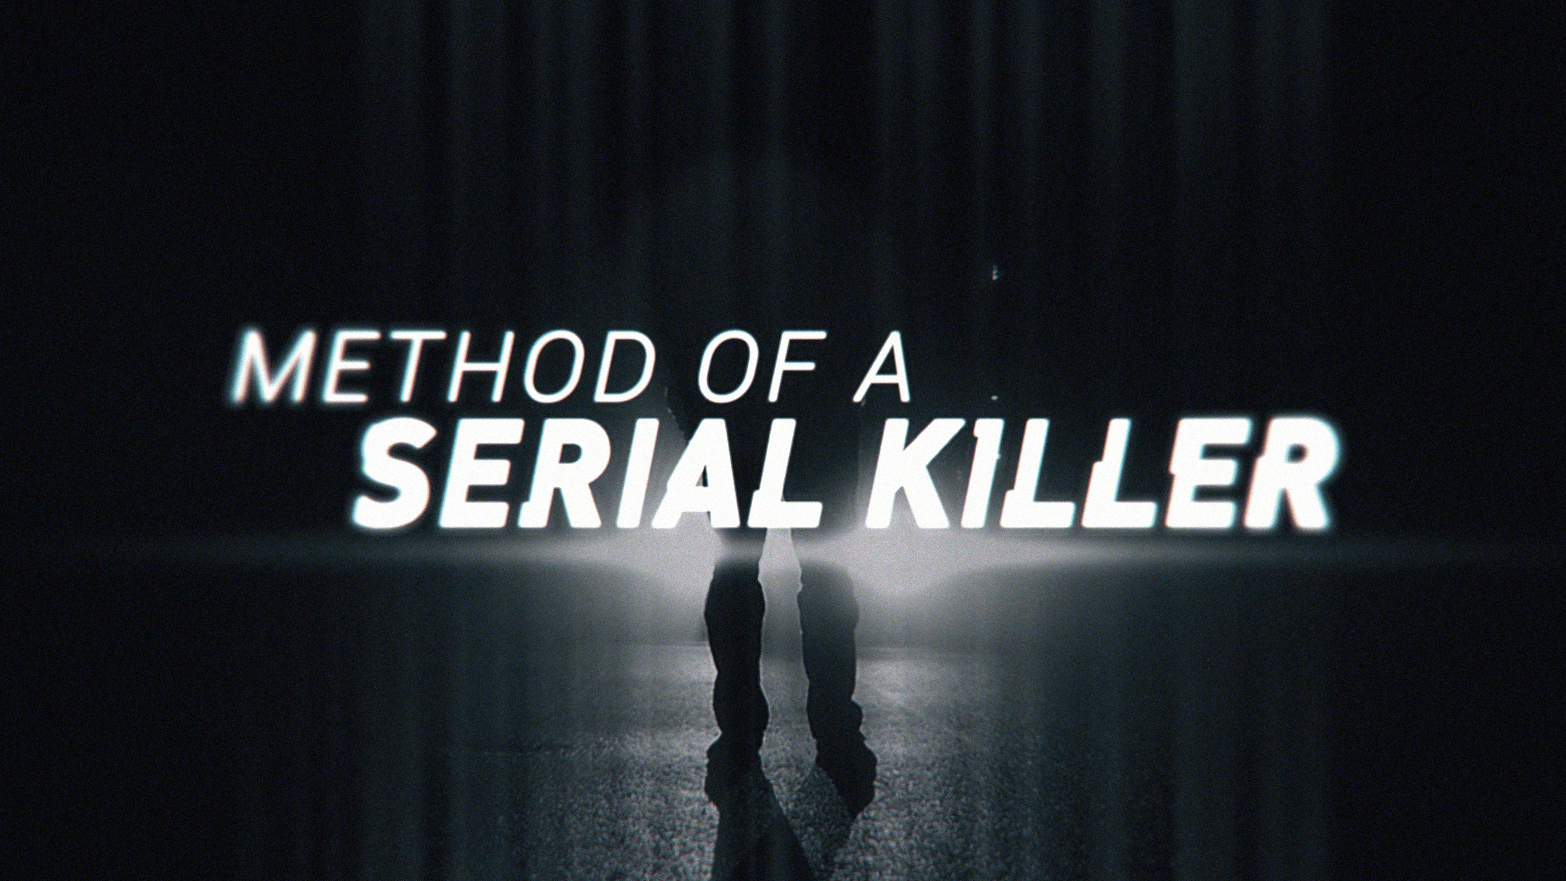 METHOD of a serial killer produciton page